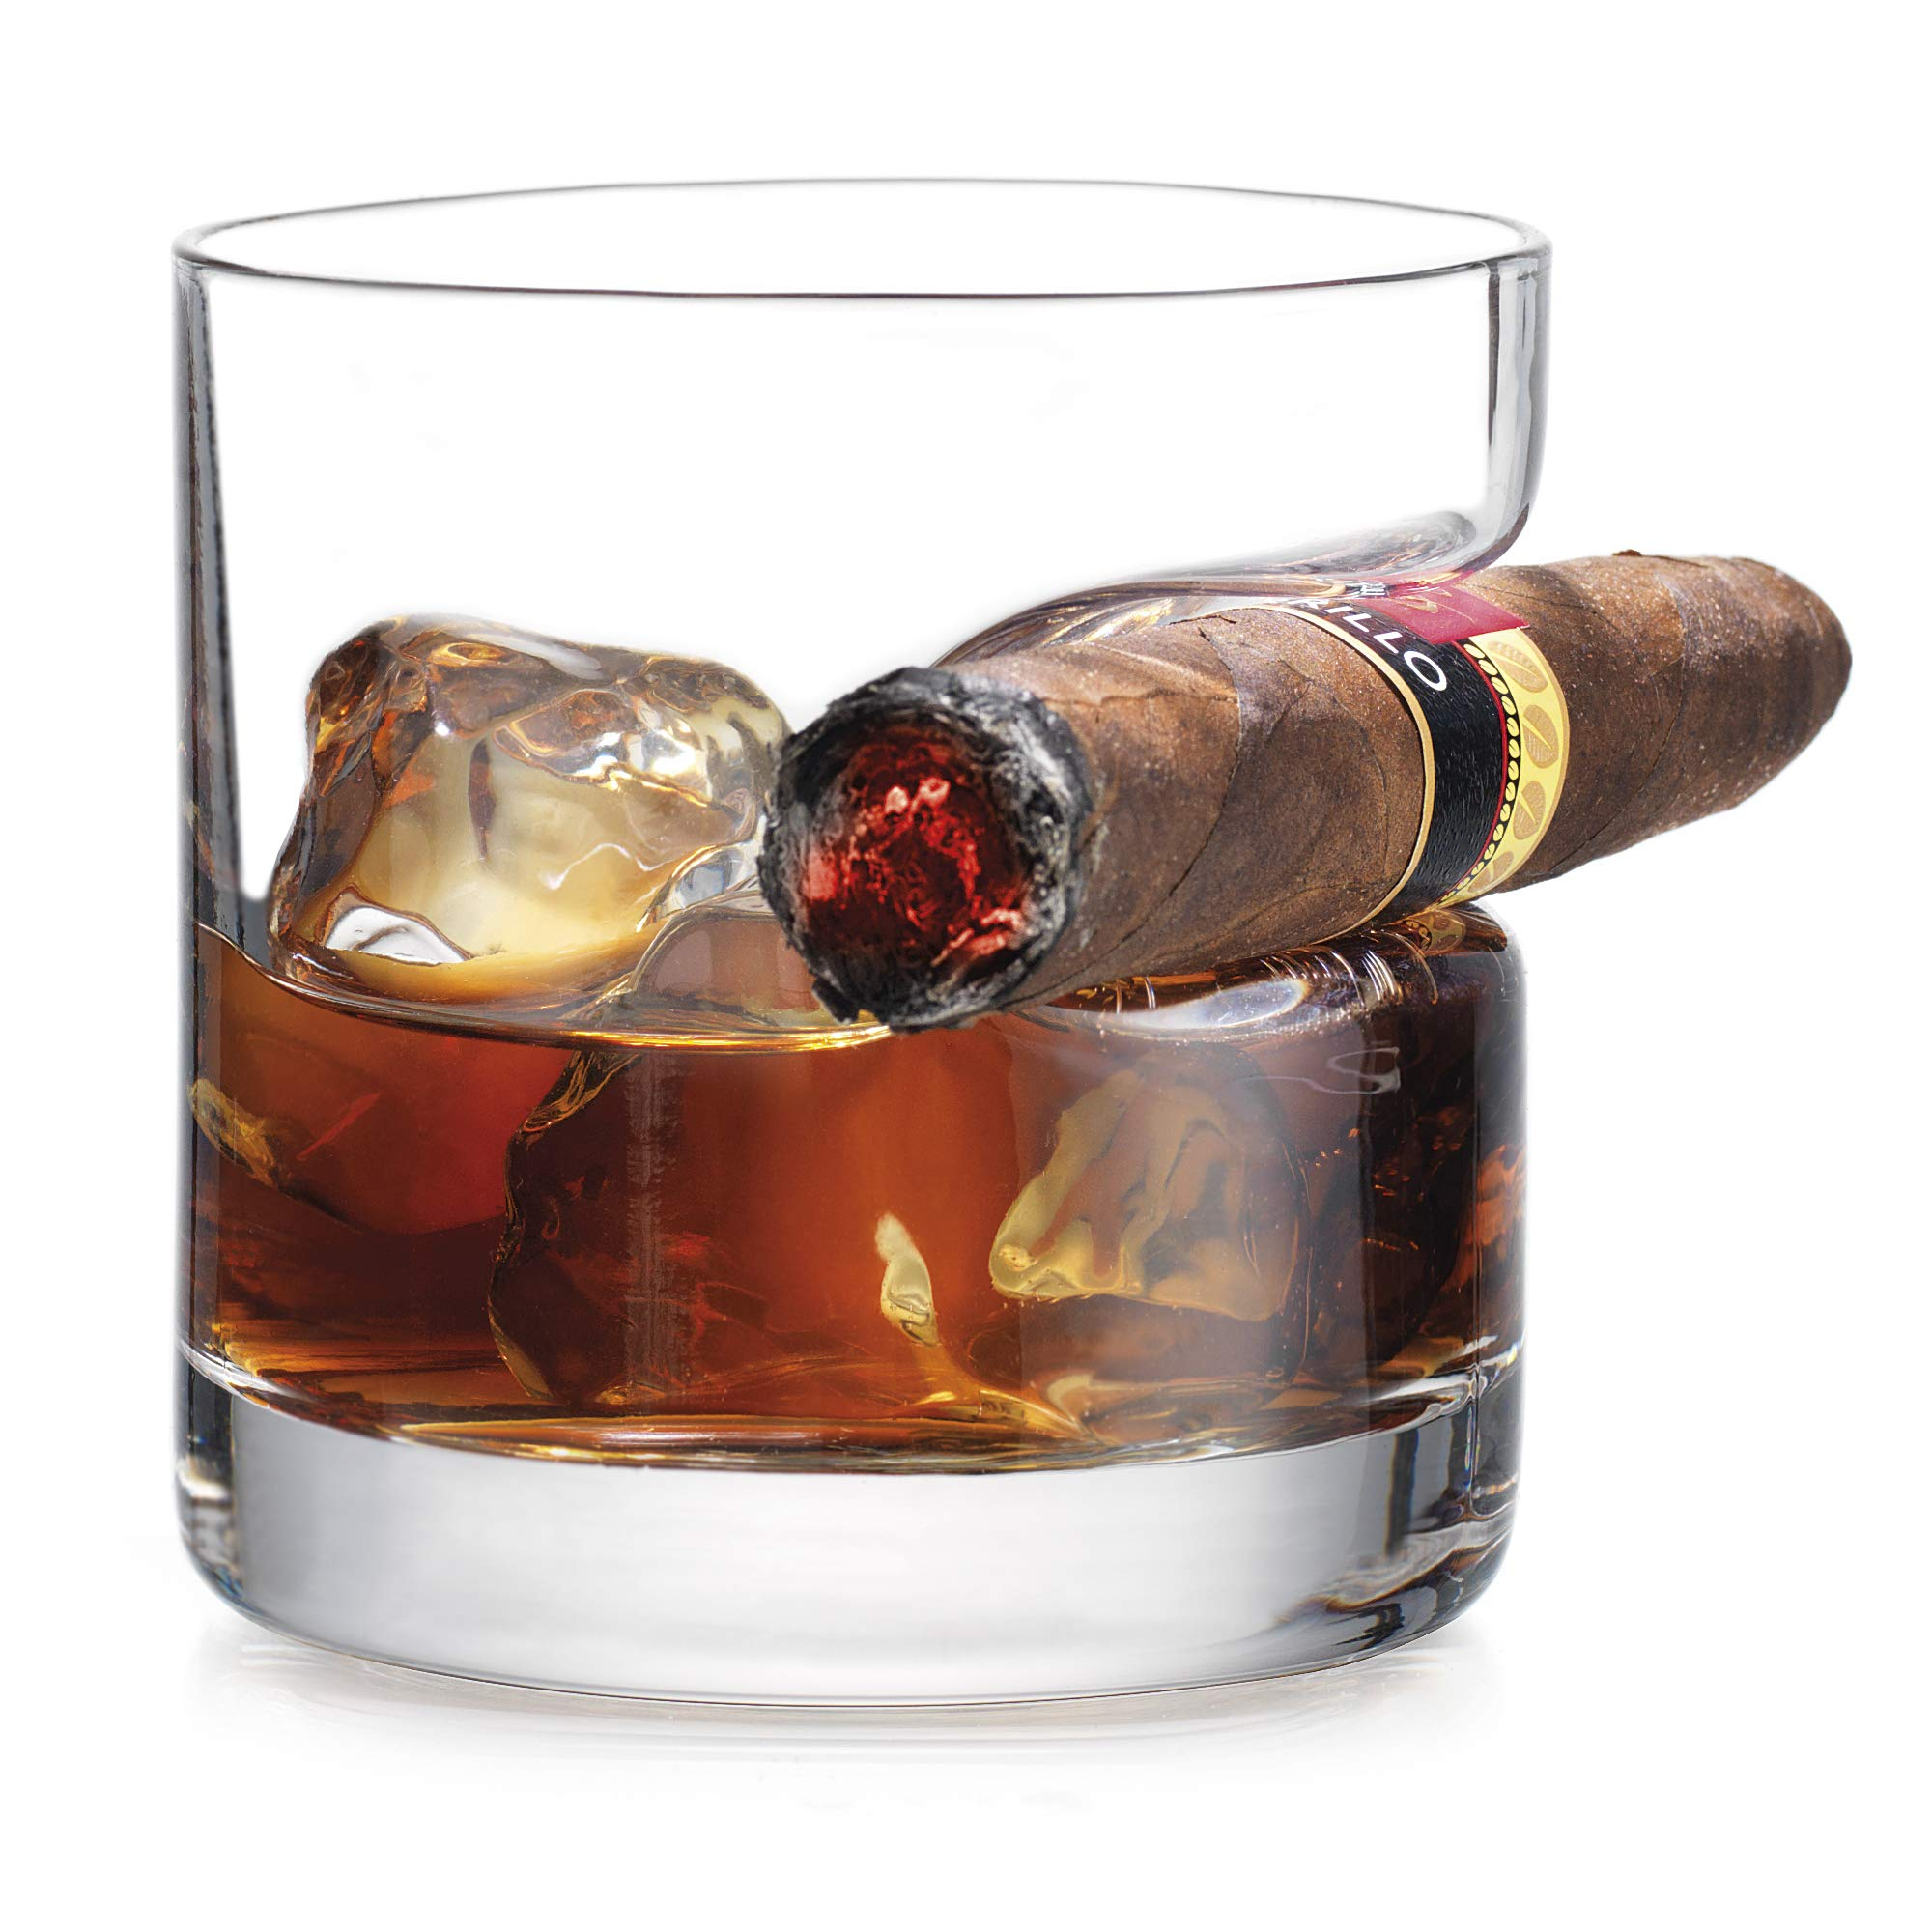 Godinger Cigar Glass - Old Fashioned Whiskey Glass With Indented Cigar Rest